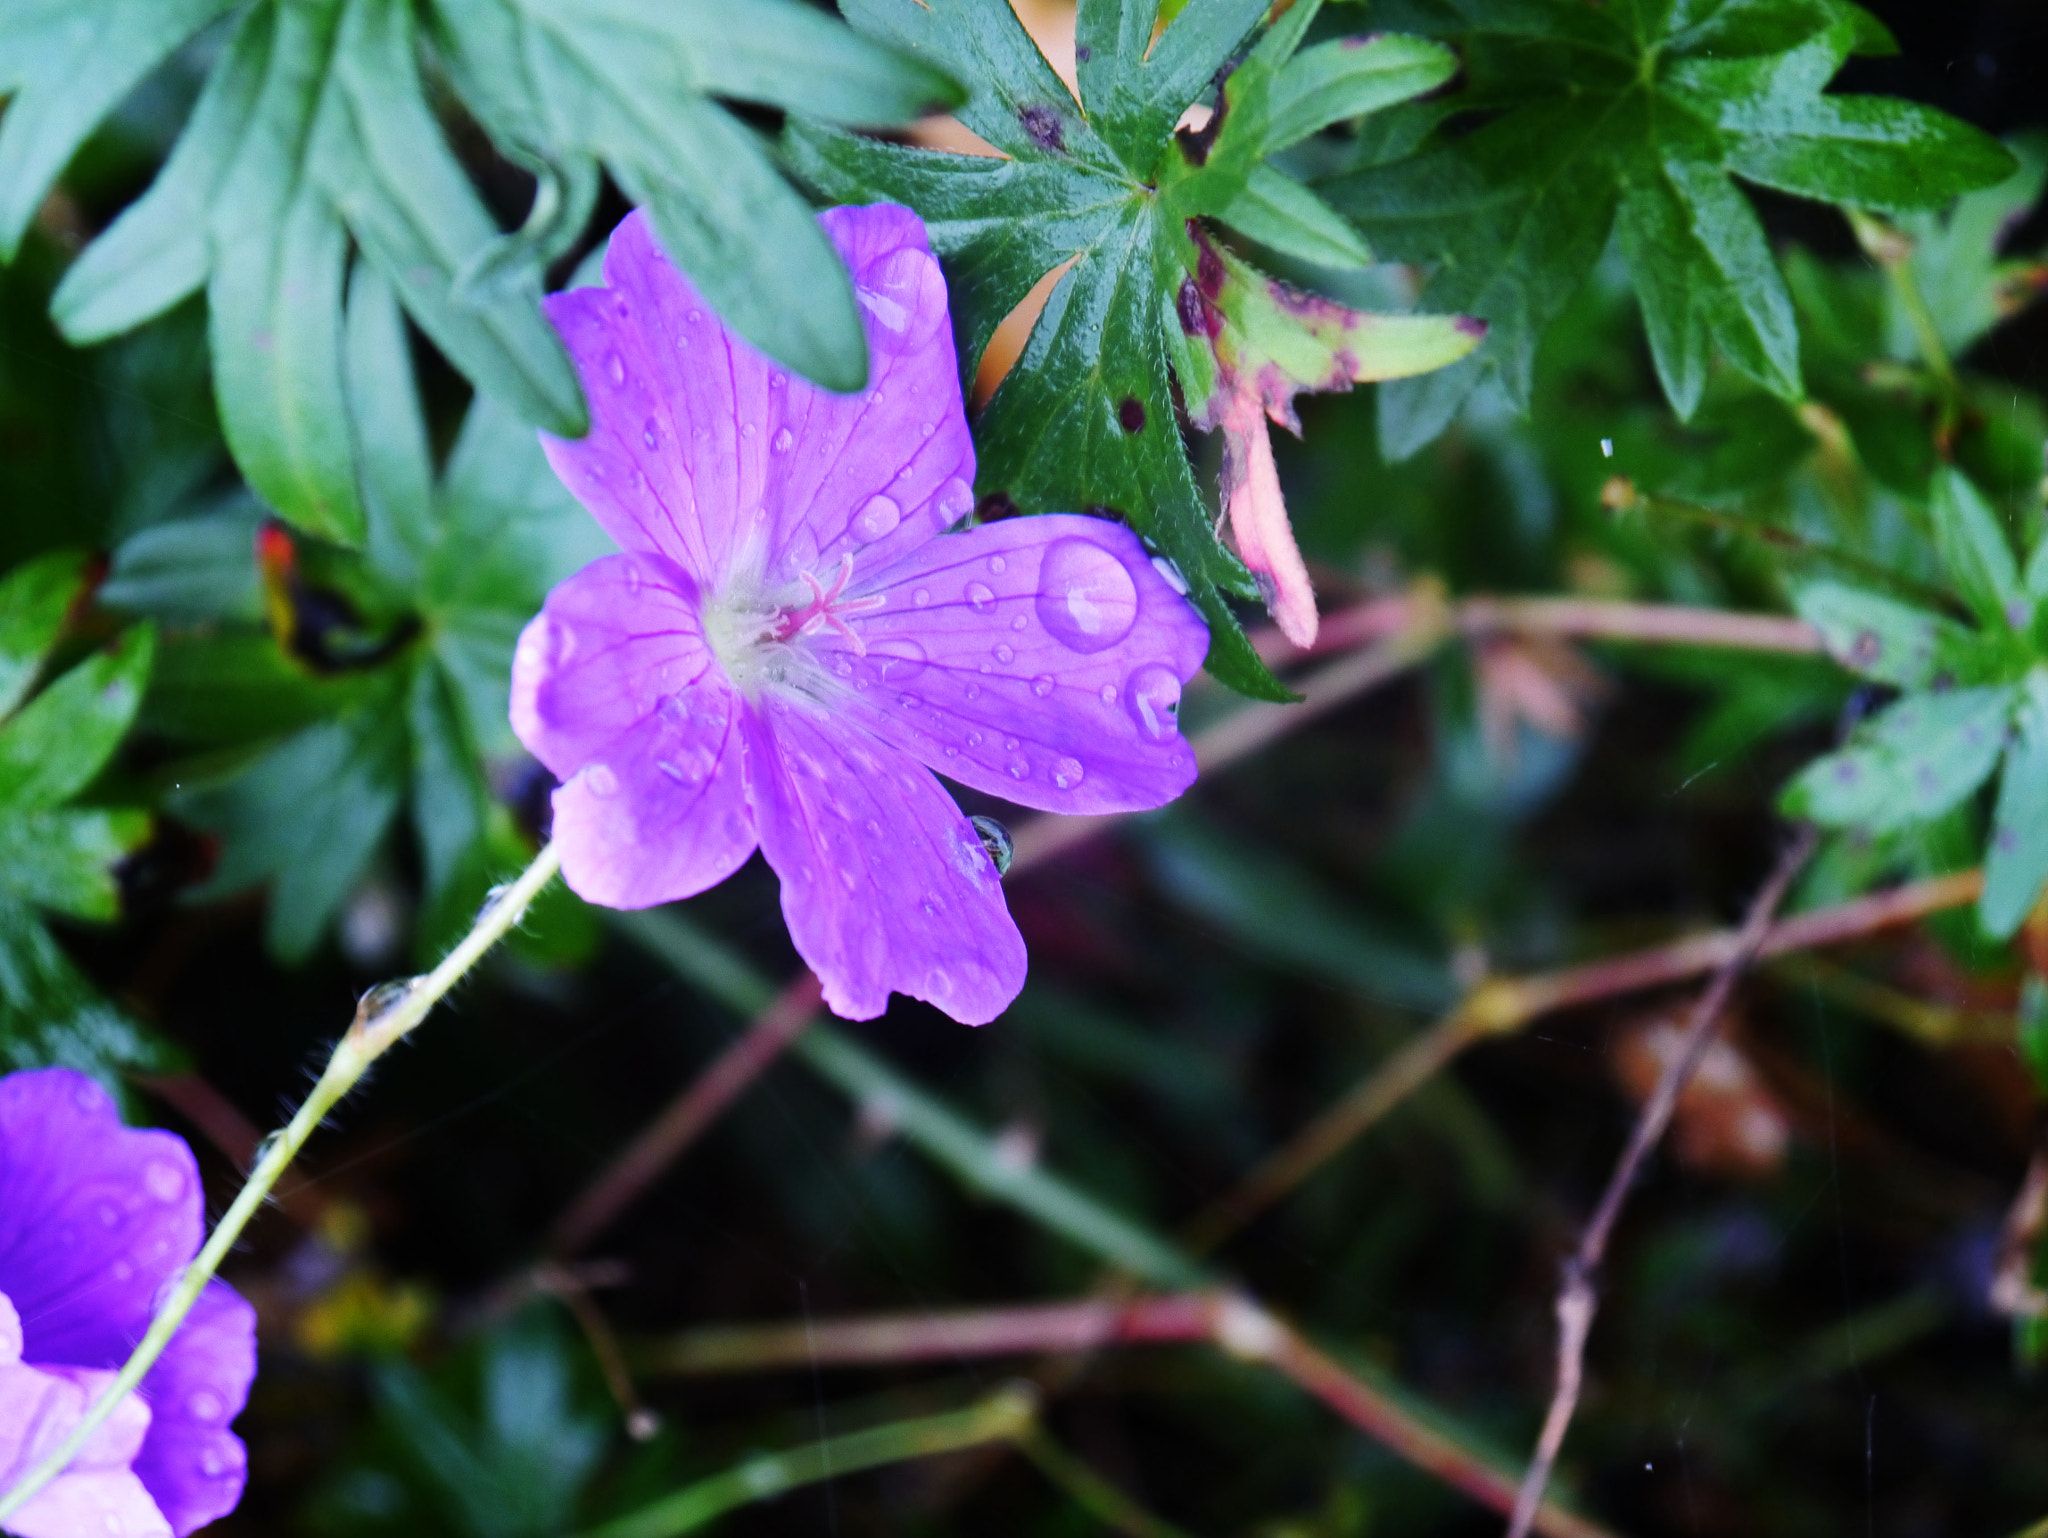 Photograph flower in the rain... by Veronika Herbst on 500px